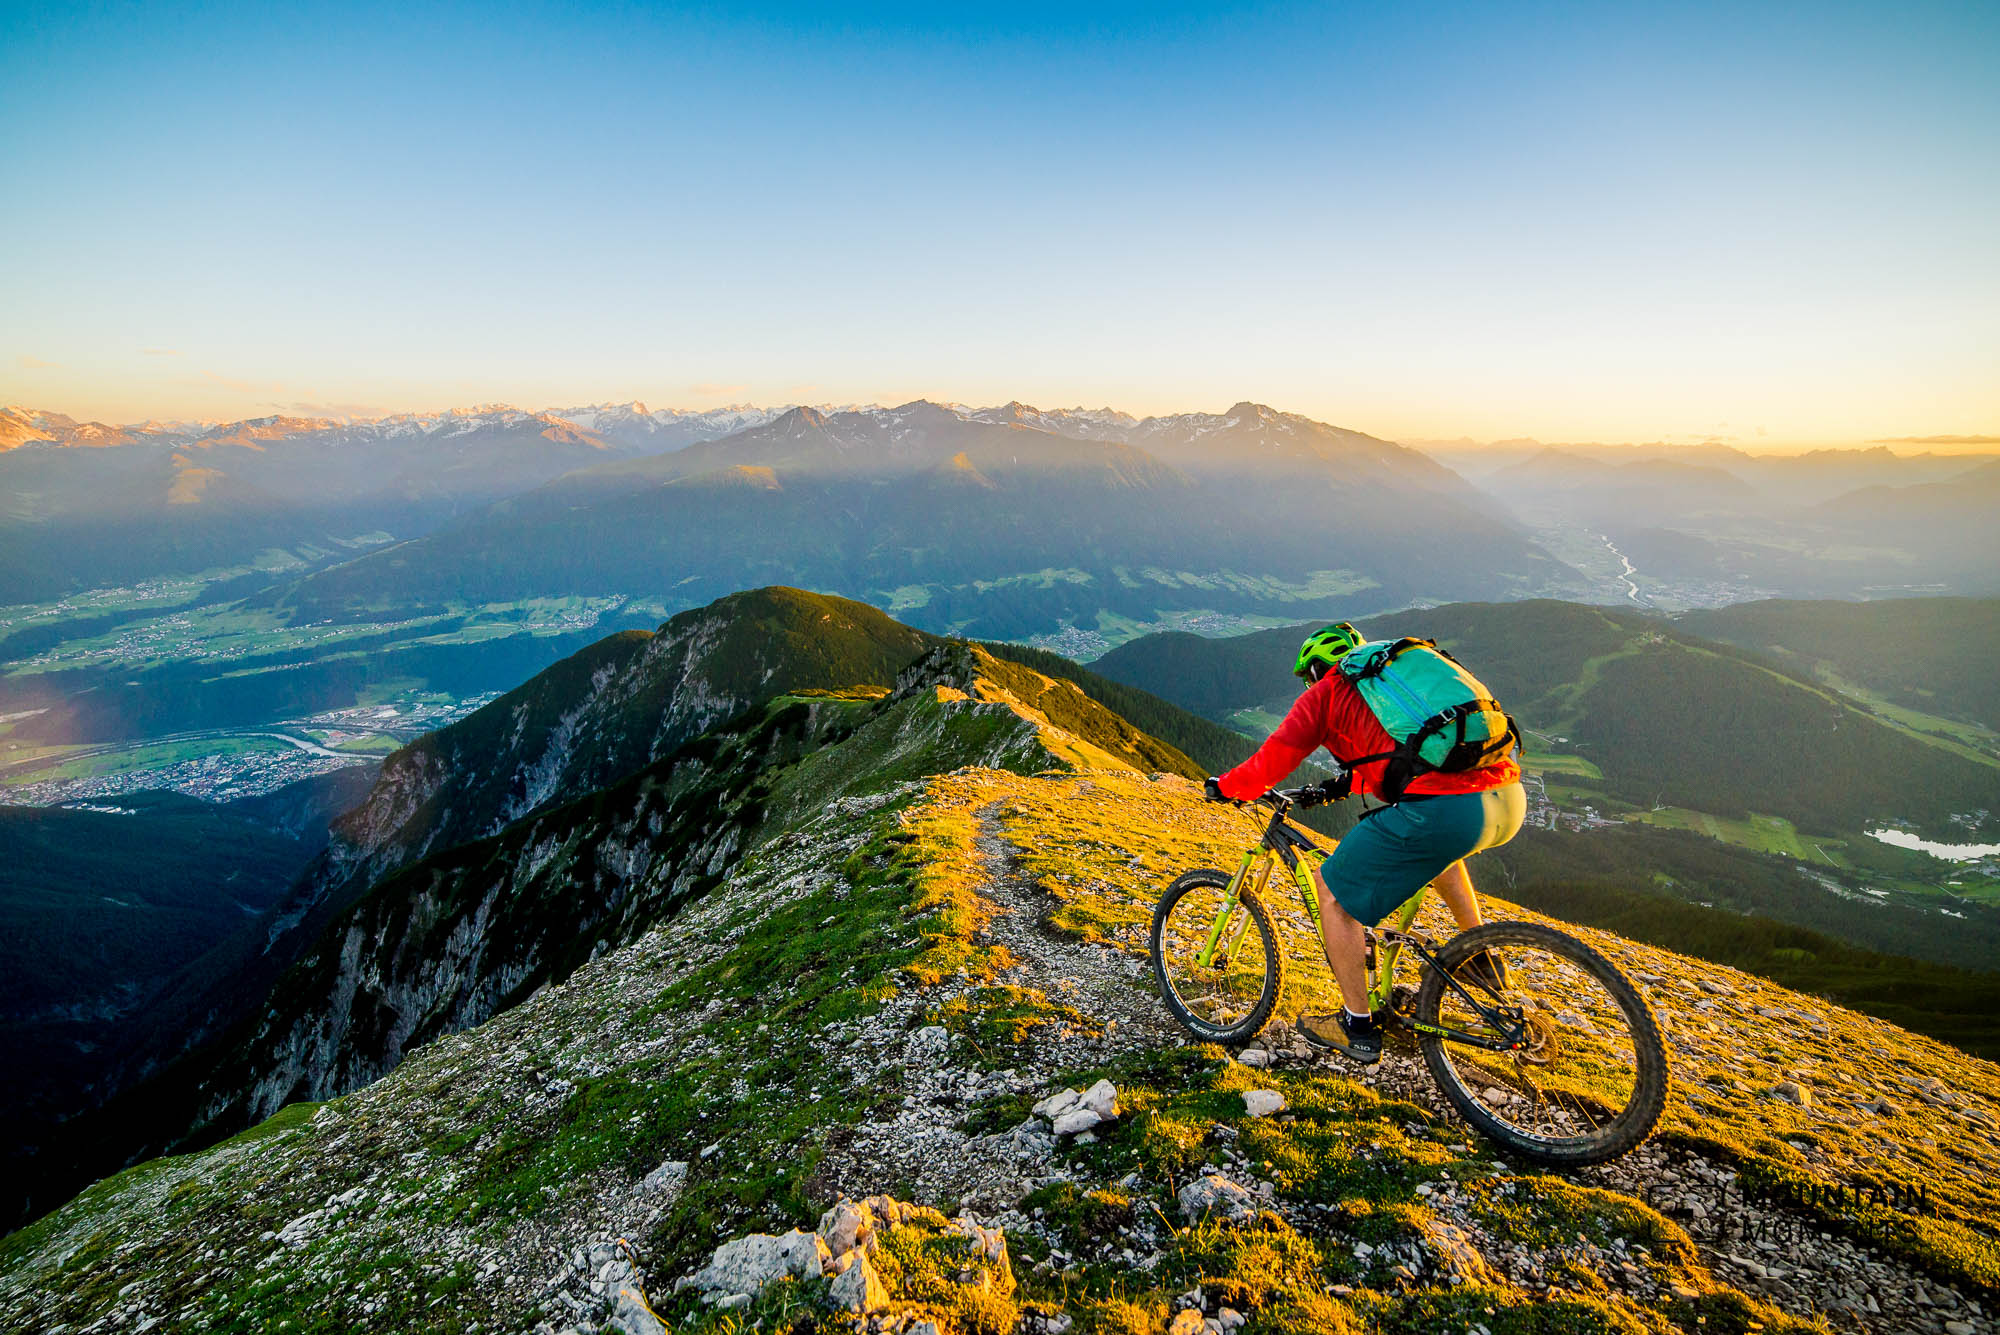 fotoservice, bike fotoservice, mountainbike fotografie, epic shot mountainbike, mountainbike epic shot, singletrail epic shot, fotoservice singletrail